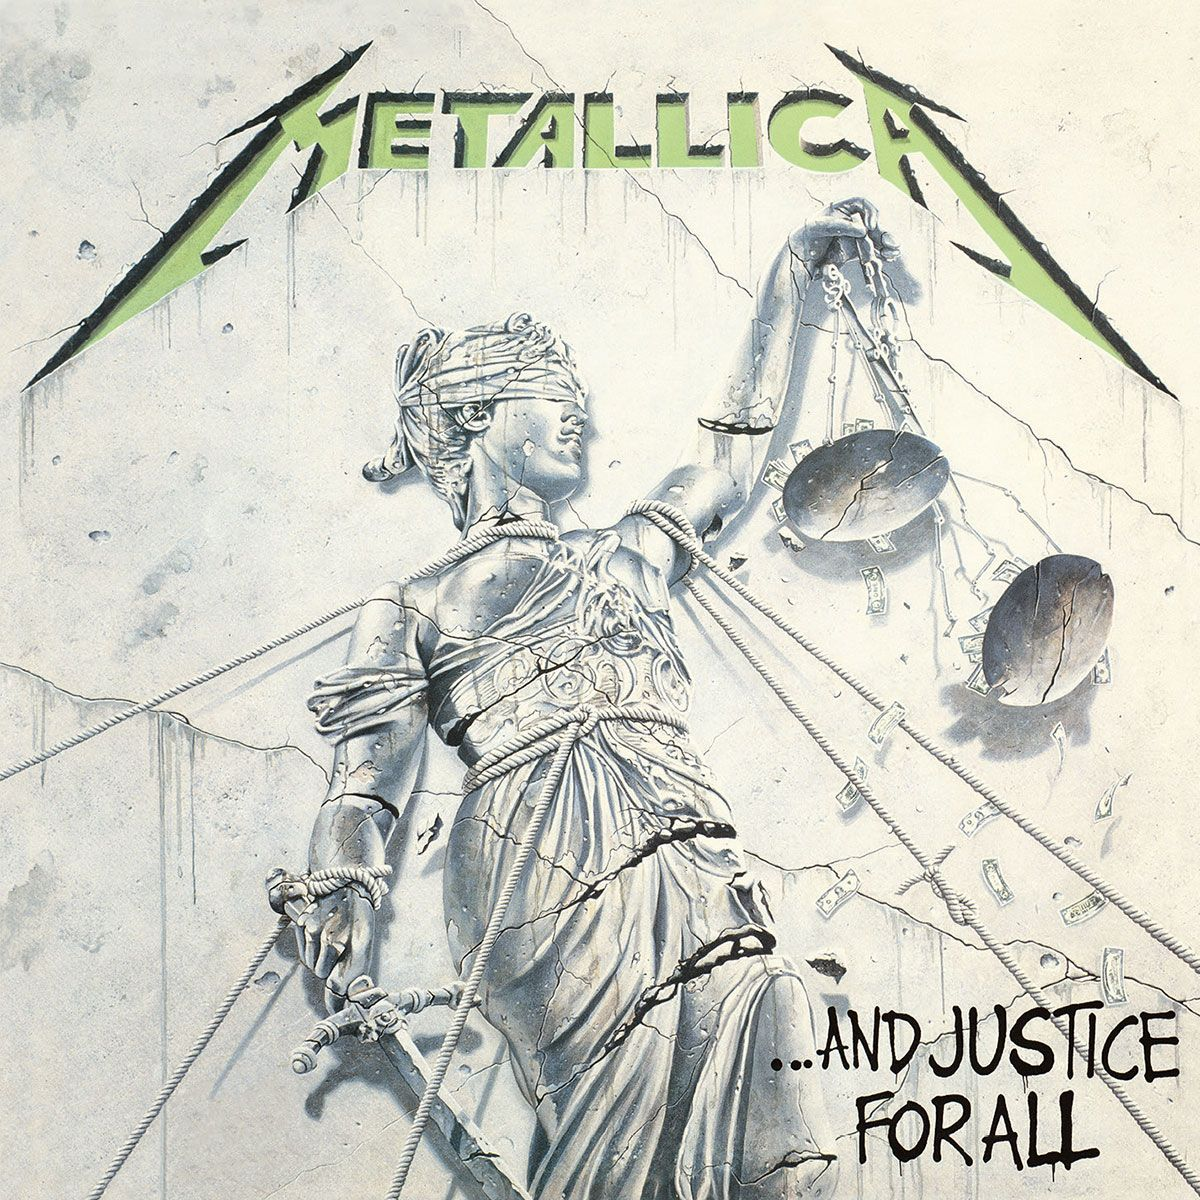 Metallica, ...and justice for all album wallpaper-cultstories cult stories musica music musique metal rock thrash cult stories cultstories cinema cult story cultstory art culture music ipse dixit aneddoti citazioni frasi famose aforismi immagini foto personaggi cultura musica storie facts fatti celebrità vip cult metallica milano metallica one metallica album metallica enter sandman metallica tour 2015 metallica hotel fiera rho 2 giugno metallica 2 giugno metallica fade to black metallica nuovo album metallica discografia metallica wikipedia metallica and justice for all metallica a milano metallica album 2015 metallica all nightmare long metallica a rho metallica a milano 2015 metallica astronomy metallica albums metallica am i evil a metallica tarantula a metallica care sheet a metallica christmas a metallica song metallica a roma metallica a roma 2014 metallica a tribute to the black album metallica a roma 2013 metallica a montreal metallica a national acrobat metallica à nimes metallica à paris metallica à la guitare metallica à québec metallica à montréal metallica à mawazine metallica à imax hommage à metallica metallica à la fnac metallica à la harpe metallica à yverdon metallica à taratata metallica à bale metallica à werchter metallica black album metallica biglietti metallica blackened metallica best songs metallica band metallica bleeding me metallica by request metallica bassista metallica best of metallica battery traduzione metallica b sides metallica b metallica b-sides and rarities group b metallica b.a.c. metallica s.r.l metallica b&b srl ain't my b metallica metallica b-sides & one offs metallica b side metallica b bender metallica concerto metallica canzoni metallica creeping death metallica cantante metallica concerti metallica concerto 2015 metallica cover metallica concerto italia metallica cliff burton metallica creeping death live metallica c drop c metallica c.m. carpenteria metallica snc c.m. carpenteria metallica poggibonsi c.m. carpenteria metallica garbagnate monastero c.p. carpenteria metallica osimo c.m. carpenteria metallica genova ghost b.c metallica metallica c tuning metallica death magnetic metallica don't tread on me metallica disposable heroes metallica damage inc metallica disappear metallica discogs metallica dyers eve metallica devil's dance metallica dvd metallica d tuning drop d metallica songs tenacious d metallica canzone metallica d'amore carpenteria metallica d'andrea d'arcangelo carpenteria metallica metallica d standard songs metallica d tuning songs metallica d&r metallica d jakarta metallica enter sandman testo metallica enter sandman lyrics metallica eye of the beholder metallica & faith no more metallica enter sandman live metallica escape metallica emp metallica else matters metallica enter sandman bass tab metallica e lou reed metallica e lang lang metallica e ozzy osbourne paranoid metallica e orchestra sinfonica metallica e orchestra metallica e tuning metallica e lou reed lulu metallica e guns roses metallica e filarmonica de são francisco metallica e ozzy metallica é satanico metallica é heavy metal metallica énekese metallica é thrash metal metallica é satanica metallica é do diabo metallica é rock ou metal metallica é metal metallica é rock metallica é demoniaco metallica é banda satanica una sfera metallica è lanciata orizzontalmente metallica cosa c è nella borsa metallica faith no more metallica fuel metallica for whom the bell tolls metallica film metallica fight fire with fire metallica font metallica fade to black traduzione metallica frantic metallica faith no more milano f metallica in monsters of rock in moscow f.o.n.t. metallica metallica - f..k like a beaver f g carpenteria metallica capaccio carpenteria metallica f.lli chiodi f. & r. carpenteria metallica s.r.l carpenteria metallica f.lli da ros metallica f metallica f tuning metallica f.o.h. engineer metallica garage inc metallica greatest hits metallica giugno metallica gold circle metallica giugno 2015 metallica garzetti metallica golden circle metallica garage days metallica gruppo metallica giugno milano gh metallica cheats gh metallica gh metallica song list gh metallica achievements gh metallica cheats ps2 gh metallica cheats wii gh metallica cheats ps3 gh metallica hyperspeed gh metallica unlock all songs gh metallica all songs cheat metallica harvester of sorrow metallica hit the lights metallica hero of the day metallica hell and back metallica harvester of sorrow traduzione metallica helpless metallica hit the lights tab metallica harvester of sorrow tab metallica hate train metallica h&m rete metallica h 200 rete metallica h 150 rete metallica h 180 rete metallica h 175 rete metallica h 50 metallica h guitar h metallica psp james h metallica koszulka metallica h&m metallica italia metallica i disappear metallica italia 2015 metallica in concerto metallica instagram metallica immagini metallica il film metallica i disappear traduzione metallica i disappear lyrics metallica imperial march i metallica canzoni i metallica a milano i metallica a cagliari i metallica fanno schifo i metallica si sciolgono i metallica in sardegna i metallica sono satanici i metallica e la filosofia i metallica si sono sciolti i metallica si drogano metallica í egilshöll metallica ísland ímagenes de metallica metallica jump in the fire metallica justice for all metallica james hetfield metallica jason newsted metallica jump in the fire traduzione metallica justin bieber metallica just a bullet away metallica junior dad traduzione metallica jump in the fire tab metallica joey jordison j.l. metallica plumeria j'aime metallica j'aime pas metallica j'aime de metallica metallica обои metallica kill em all metallica king nothing metallica killing time metallica kickasstorrent metallica kill em all download metallica kill em all lyrics metallica karaoke metallica kill them all metallica kill em all rar metallica kill em all recensione ba-k metallica metallica live in k.l metallica k.o metallica k boing ouvir metallica k metallica discografia ba-k metallica sinfonico ba-k metallica ouvir kboing metallica dvd-k metallica 2013 ba-k metallica live metallica load metallica logo metallica lyrics metallica live 2015 metallica lords of summer metallica lulu metallica las vegas nv usa 9 maggio metallica leper messiah metallica live nimes metallica l estasi dell oro l disappear metallica one metallica l carpenteria metallica l'aquila l'ultimo dei metallica metallica l odyssée metal metallica l'amour brooklyn metallica l prediction metallica l'amour metallica master of puppets metallica milano 2 giugno metallica mama said metallica metallica metallica marcon metallica motorbreath metallica metallum metallica memory remains metallica my friend of misery m metallica tattoo m metallica logo metallica m&s metallica m.u.y.a metallica s & m youtube metallica i'm evil metallica s & m mp3 s m metallica blu ray s & m metallica download mp3 metallica m&s download metallica new album metallica nothing else matters tab metallica new album 2015 metallica nuovo album 2015 metallica nothing else matters lyrics metallica news metallica nonciclopedia metallica nothing else matters accordi metallica nothing else matters testo e traduzione m metallica metallica n guns n metallica tour guns n metallica bossa n metallica metallica en mexico metallica n justice for all s m metallica wiki metallica one traduzione metallica one testo metallica one lyrics metallica one tab metallica ondarock metallica of wolf and man metallica orchestra metallica one testo e traduzione metallica official o metallica é satanico o metallica é a maior banda de rock porque metallica o iron maiden metallica o guns n roses metallica o slayer metallica o linkin park metallica o pantera metallica o iron maiden yahoo metallica o led zeppelin metallica o judas priest metallica óra órion metallica metallica prossimi eventi metallica playlist metallica paluzza metallica phantom lord metallica prato metallica primo album metallica pianoforte metallica prezzi biglietti metallica poster metallica poor twisted me p.metallica sling care p metallica venom p metallica mating p metallica for sale p metallica care sheet p metallica tarantula p metallica tarantula for sale p metallica care p metallica breeding p. metallica terrarium metallica quebec magnetic metallica quotes metallica queen metallica quiz metallica quebec magnetic setlist metallica quotes from songs metallica quebec magnetic blu ray metallica quebec magnetic review metallica queen cover metallica quotes tumblr metallica q magazine interview metallica q prime metallica q magazine metallica q genero es metallica q nueva q metallica revista q metallica q management metallica q prime management metallica q genero canta metallica metallica rho metallica rho 2015 metallica reload metallica ride the lightning metallica roma 2015 metallica roma 2014 metallica rho 2 giugno metallica roma metallica rho fiera metallica ride the lightning album r metallica through the never r.m. metallica subbiano r.m. raccorderia metallica r.t. carpenteria metallica r.f. carpenteria metallica r&p carpenteria metallica metallica r i p d&r metallica dvd-r metallica quebec magnetic gnr-metallica stadium tour metallica sonisphere metallica sad but true metallica sonisphere 2015 metallica song one metallica st anger metallica some kind of monster metallica scaruffi metallica setlist metallica sandman metallica sanitarium metallica s m no leaf clover metallica s m one metallica s m nothing else matters metallica s & m album tracklist metallica s & m full album metallica s m video metallica s m song list metallica s m master of puppets metallica s m hero of the day metallica through the never metallica ticketone metallica through the never streaming metallica turn the page metallica the day that never comes metallica tour 2015 italia metallica through the never streaming ita metallica the unforgiven 2 metallica the memory remains metallica t shirt metallica t shirt uk metallica t shirt ebay metallica t shirts amazon metallica t shirt vintage metallica t shirt amazon metallica t-shirt baby metallica t shirt ride the lightning metallica t-shirt and justice for all white metallica t shirts ebay metallica unforgiven metallica ultimo album metallica unforgiven 3 metallica until it sleeps metallica unforgiven testo metallica unforgiven lyrics metallica underfold metallica unforgiven testo e traduzione metallica unplugged metallica udine better than you metallica i n u metallica metallica u.s. tour metallica u beogradu 2012 metallica u zagrebu youtube metallica nothing else matters metallica u beogradu 2013 youtube metallica turn the page metallica songs youtube metallica új album metallica új album 2013 metallica új album 2012 metallica új album 2014 metallica último cd metallica hungarica újság metallica estadio único metallica estadio único de la plata metallica últimas notícias metallica új albuma metallica ù metallica video metallica vienna metallica vienna austria 4 giugno metallica video musicali metallica vs megadeth metallica video nothing else matters metallica viagogo metallica vancouver metallica vendite metallica vinile mark v metallica setting mark v metallica mesa mark v metallica tone v amp 2 metallica sound metallica v sloveniji metallica v praze 2014 metallica v prahe metallica v čr metallica v čr 2014 metallica v bratislave metallica welcome home metallica wherever i may roam metallica wikiquote metallica whiskey in the jar testo metallica wallpaper metallica welcome home lyrics metallica whiskey in the jar tab metallica whiskey in the jar lyrics metallica wasting my hate metallica w polsce 2014 metallica w polsce 2012 metallica w warszawie 2014 metallica w polsce 2014 koncert metallica w polsce metallica w polsce 2013 metallica w polsce 2014 bilety metallica w warszawie metallica w polsce 1987 metallica w polsce bilety metallica xm radio metallica xm radio channel metallica xt fishing reel metallica xbox 360 metallica xm station metallica xylophone metallica xmas sweater metallica xbox 360 cheats metallica x vans metallica xmas song metallica x factor metallica x 4 project x metallica vans x metallica price vans x metallica kill 'em all half cab pro vans x metallica era laceless rete metallica x conigli rete metallica x voliere vans escuela x metallica metallica youtube metallica yahoo metallica yeah metallica youtube nothing else matters metallica youtube unforgiven metallica youtube master of puppets metallica youtube playlist metallica youtube enter sandman metallica you really got me metallica youtube one metallica y la sinfonica de san francisco metallica y ricky martin metallica y joey jordison queen e metallica metallica y la orquesta sinfonica de san francisco metallica y megadeth metallica y la sinfonica metallica y ozzy metallica y la filarmonica de san francisco metallica y la sinfonica de san francisco descargar metallica zombieland metallica zombieland song metallica zippo metallica zero dark thirty metallica zippo lighter metallica zombie video metallica zombie music video metallica zip up hoodie metallica zorlac skateboard metallica zorlac jay z metallica jay z metallica double black album metallica z orkiestrą symfoniczną dragon ball z metallica metallica z orkiestrą symfoniczną płyta metallica z orkiestrą metallica z orkiestra symfoniczna metallica z orkiestrą symfoniczną youtube metallica z orkiestrą symfoniczną chomikuj metallica z symfonią one metallica metallica.-.01.-.for.whom.the.bell.tolls metallica 007 metallica.-.01.-.for.whom.the.bell.tolls traduzione metallica.-.01.-.for.whom.the.bell.tolls tab metallica 08 the judas kiss metallica 01 for whom the bell tolls bass tab metallica.-.01.-.for.whom.the.bell.tolls lyrics metallica.-.01.-.for.whom.the.bell.tolls.(live.big.day.out.) mp3 metallica 04. fade to black lyrics rete metallica 0.5 metallica 0 lyrics coca cola 0 metallica 0 dark 30 metallica metallica 0 metallica 1991 metallica 1983 metallica 1985 metallica 1982 metallica 1986 metallica 1987 metallica 1991 moscow metallica 1989 metallica 1991 mosca metallica 1981 1 metallica lyrics 1. metallica album 1 metallica master of puppets 1 metallica tab 1. metallica – enter sandman (rock/metal) – link 1 metallica mp3 metallica 1 luglio metallica 1 luglio 2014 metallica 1 million concert metallica 1 luglio 2014 scaletta metallica 2015 metallica 2015 milano metallica 2 giugno rho metallica 2 giugno biglietti metallica 2015 album metallica 2015 tour metallica 2014 metallica 2 giugno 2015 milano metallica 2015 rho 2- metallica = nothing else matters 2. metallica - enter sandman metallica 2 x 4 metallica 2 4 metallica 2 x 4 lyrics metallica 2 metallica 2 x 4 tab metallica 2 of one dvd metallica 2 x 4 meaning metallica 2 unforgiven metallica 3d through the never metallica 3d metallica 30 anniversario metallica 3d streaming ita metallica 30th anniversary metallica 3d - through the never streaming ita metallica 3d movie metallica 3d movie trailer metallica 30th anniversary dvd metallica 30th anniversary setlist 3. metallica / nothing else matters 3 metallica songs metallica 3 metallica 3 album metallica 3d trailer unforgiven 3 metallica unforgiven 3 metallica lyrics amplitube 3 metal preset mp3 metallica metallica 4 horsemen lyrics metallica 4 leaf clover metallica 45rpm metallica 4sh metallica 4 horsemen metallica 4k metallica 4xl metallica 45 metallica 4 horsemen tab metallica 45rpm series 4. metallica – enter sandman cover iphone 4 metallica 2 x 4 metallica big 4 metallica unforgiven 4 metallica guitar rig 4 metallica iphone 4 metallica youtube big 4 metallica big 4 metallica setlist gta 4 metallica metallic 5s metallica 5.98 metallica 53rd and 3rd metallica 5.1 metallica 5th album metallica 5 string bass songs metallica 5xl metallica 598 ep songs metallica 5.98 ep vinyl metallica 5.98 ep garage days revisited $5 metallica tickets $5 metallica concert 5 metallica songs $5 metallica $5 metallica show $5 metallica show vancouver metallica 5 symphony top 5 metallica iphone 5 metallica case iphone 5 metallica wallpaper metallica 666 metallica 6 feet down under metallica 666 album metallica 666 lyrics metallica 6 year old drummer metallica 6 1/2 year anniversary metallica 6 de agosto metallica 6 juni metallica 6 de agosto 2012 setlist metallica 6th album line 6 metallica settings line 6 metallica tone line 6 metallica sound boss gt6 metallica patch fan can 6 metallica boss gt6 metallica ticketone metallica 6 luglio fan can 6 metallica setlist guitar pro 6 metallica metallica 7 string metallica 7 continents metallica 7 string guitar metallica 70s metallica 7 nation army metallica 7 agosto setlist metallica 720p metallica 7 de agosto metallica 7 vinyl metallica 7 minute song windows 7 metallica theme win 7 metallica theme windows 7 metallica tema metallica 8 bit metallica 89 metallica 80 metallica 89 seattle metallica 81 metallica 82 metallica 80s albums metallica 86 live metallica 85 live metallica 86 tour metallica 8 minute song metallica 8 bit download windows 8 metallica theme boss gt 8 metallica one metallica 8 bit metallica 8 octobre 2013 metallica 8 octobre metallica 8 de diciembre metallica 8 bits metallica 90s metallica 90s songs metallica 93 tour metallica 9.98 cd garage days metallica 92 metallica 911tabs metallica 91 moscow metallica 90 year old fan metallica 90 year old woman metallica 92 tour 9gag metallica metallica 9 octobre metallica 9 agosto 2012 metallica 9 de agosto mexico metallica 9/22/13 metallica 9 juli metallica 9/11 metallica 9 minute song metallica 9 juli 2014 metallica 9/21 metallica 10th album metallica 10th studio album metallica 10 best songs metallica 100 club metallica 10 minute song metallica 10th album news metallica 10th studio album release date metallica 10 top songs metallica 1080p wallpaper metallica 100 greatest songs 10 metallica top 10 metallica enter sandman metallica 10 hours metallica 10 best song metallica 10 best top 10 metallica song top 10 metallica ballads top 10 metallica riffs 10 worst metallica songs top 10 metallica tracks